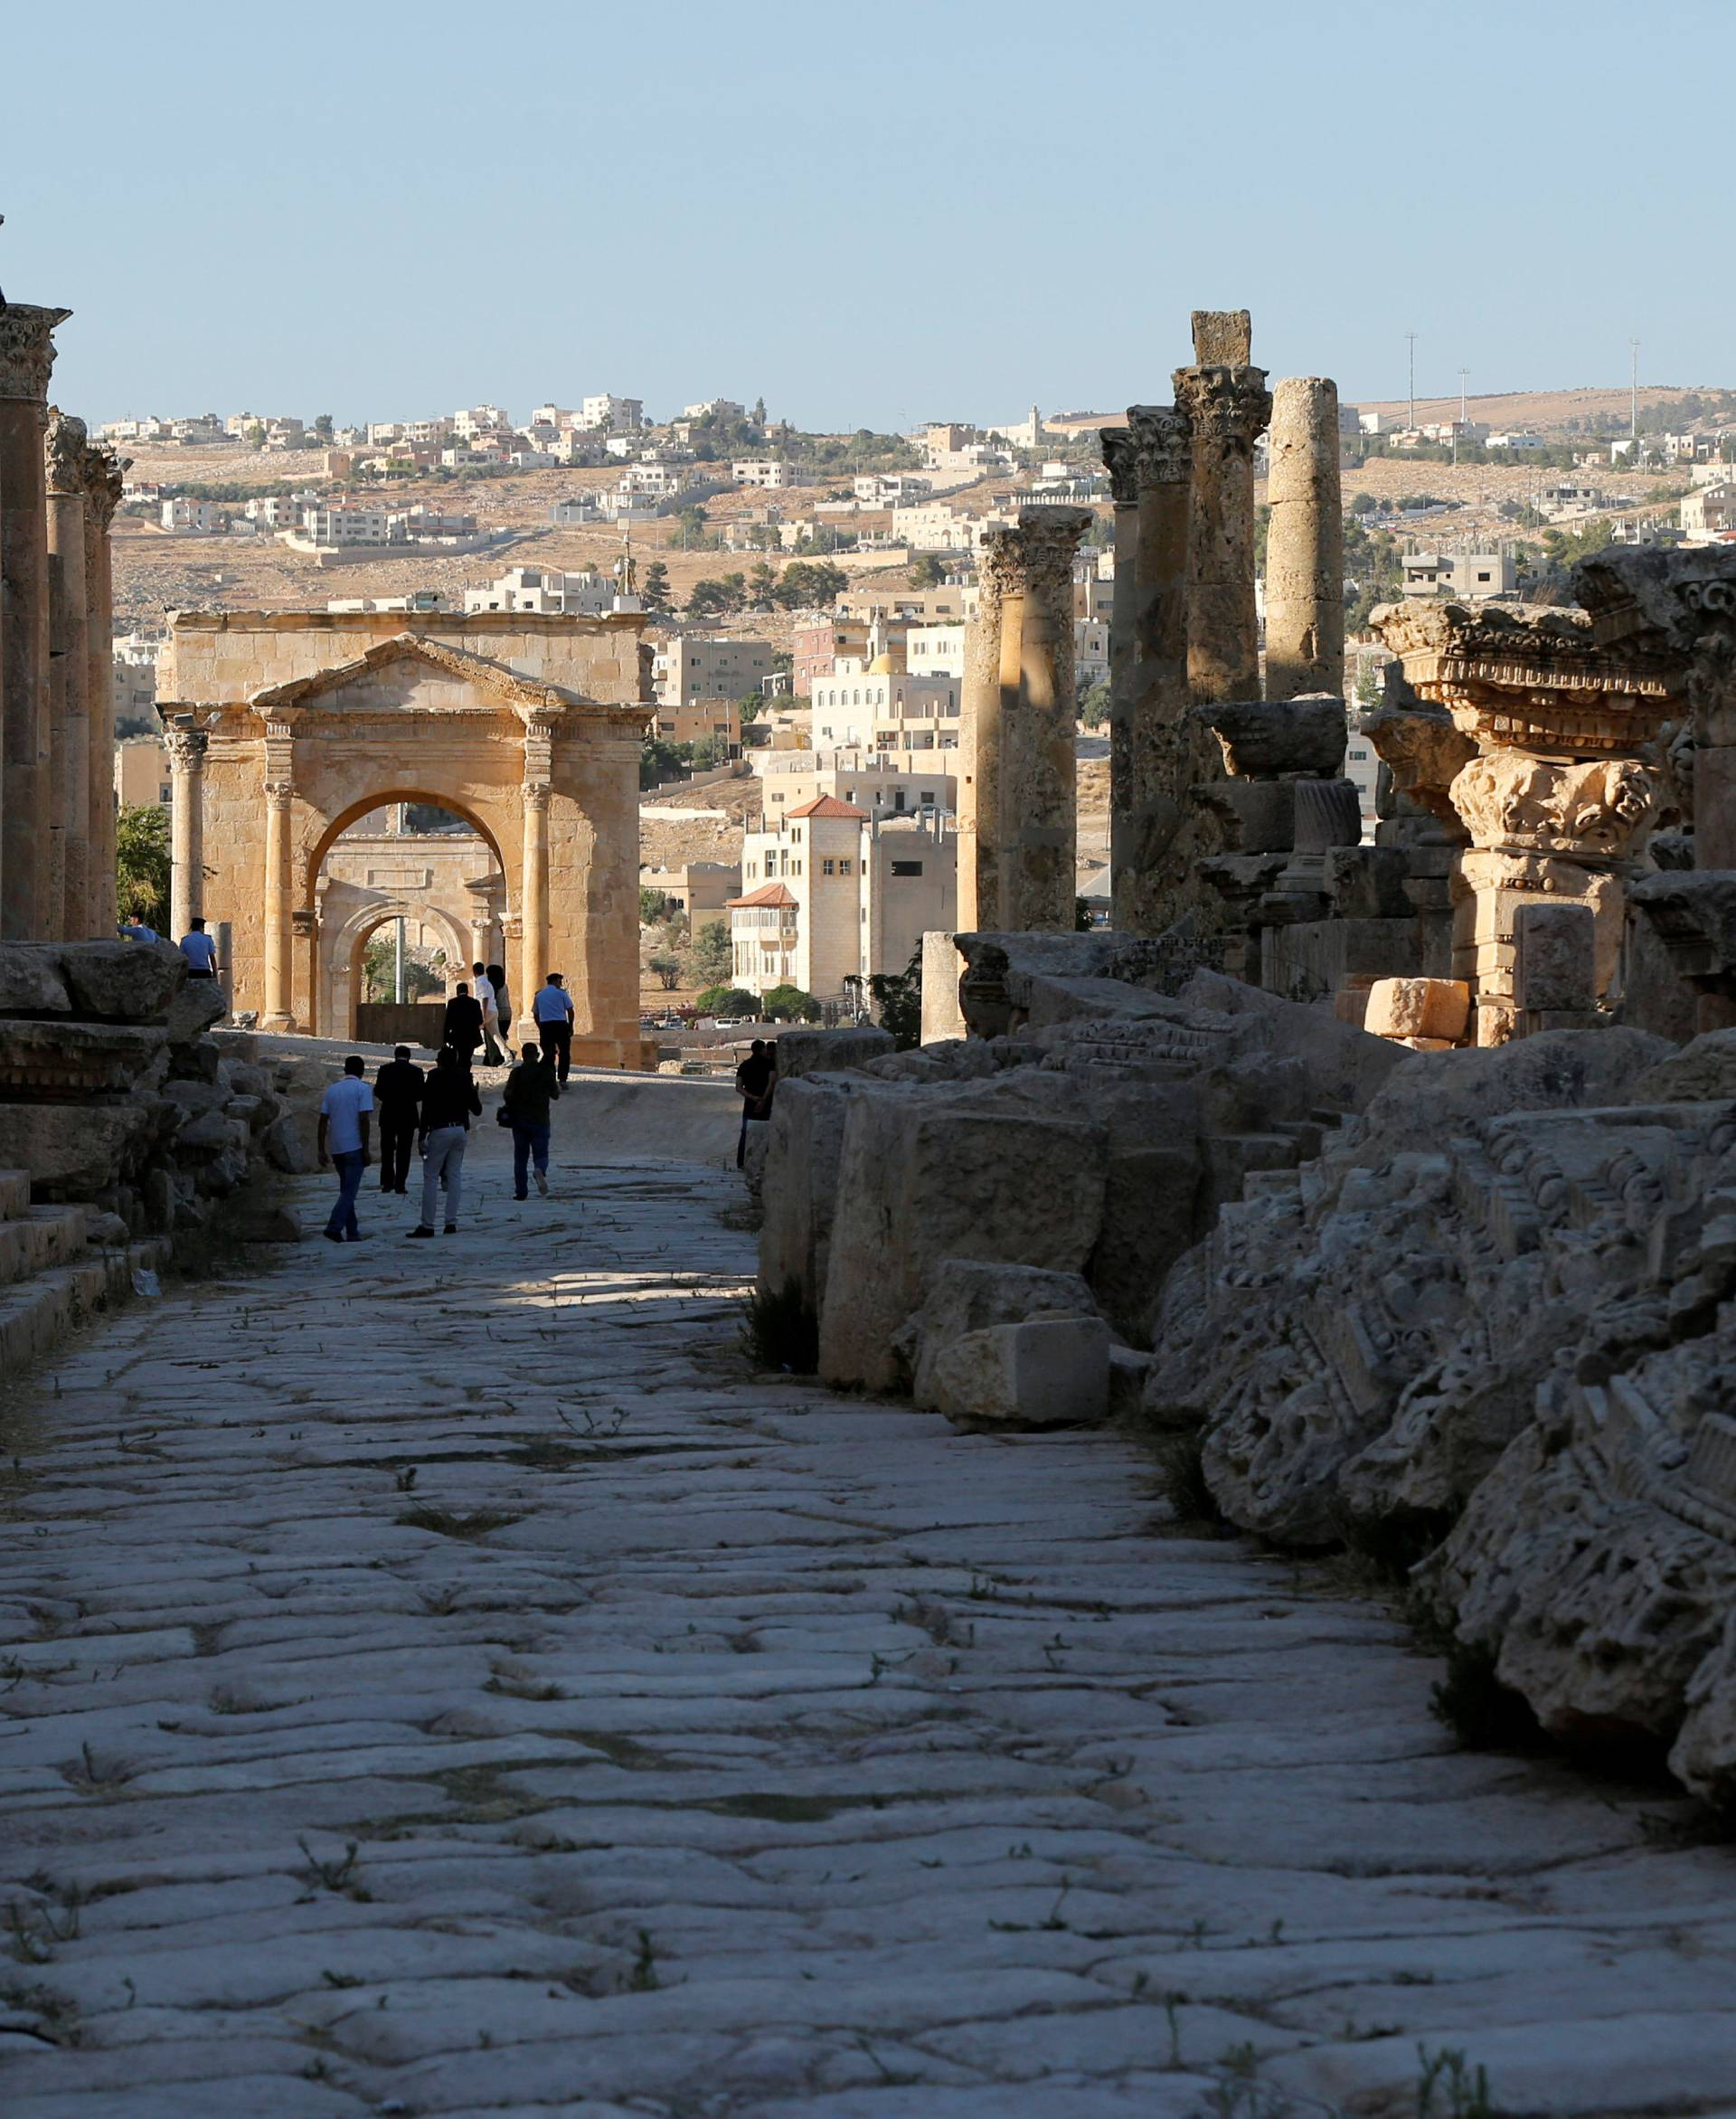 FILE PHOTO: People walk along the ruins of the ancient Roman city of Jerash during the Jerash Festival of Culture and Arts in the ancient city of Jerash